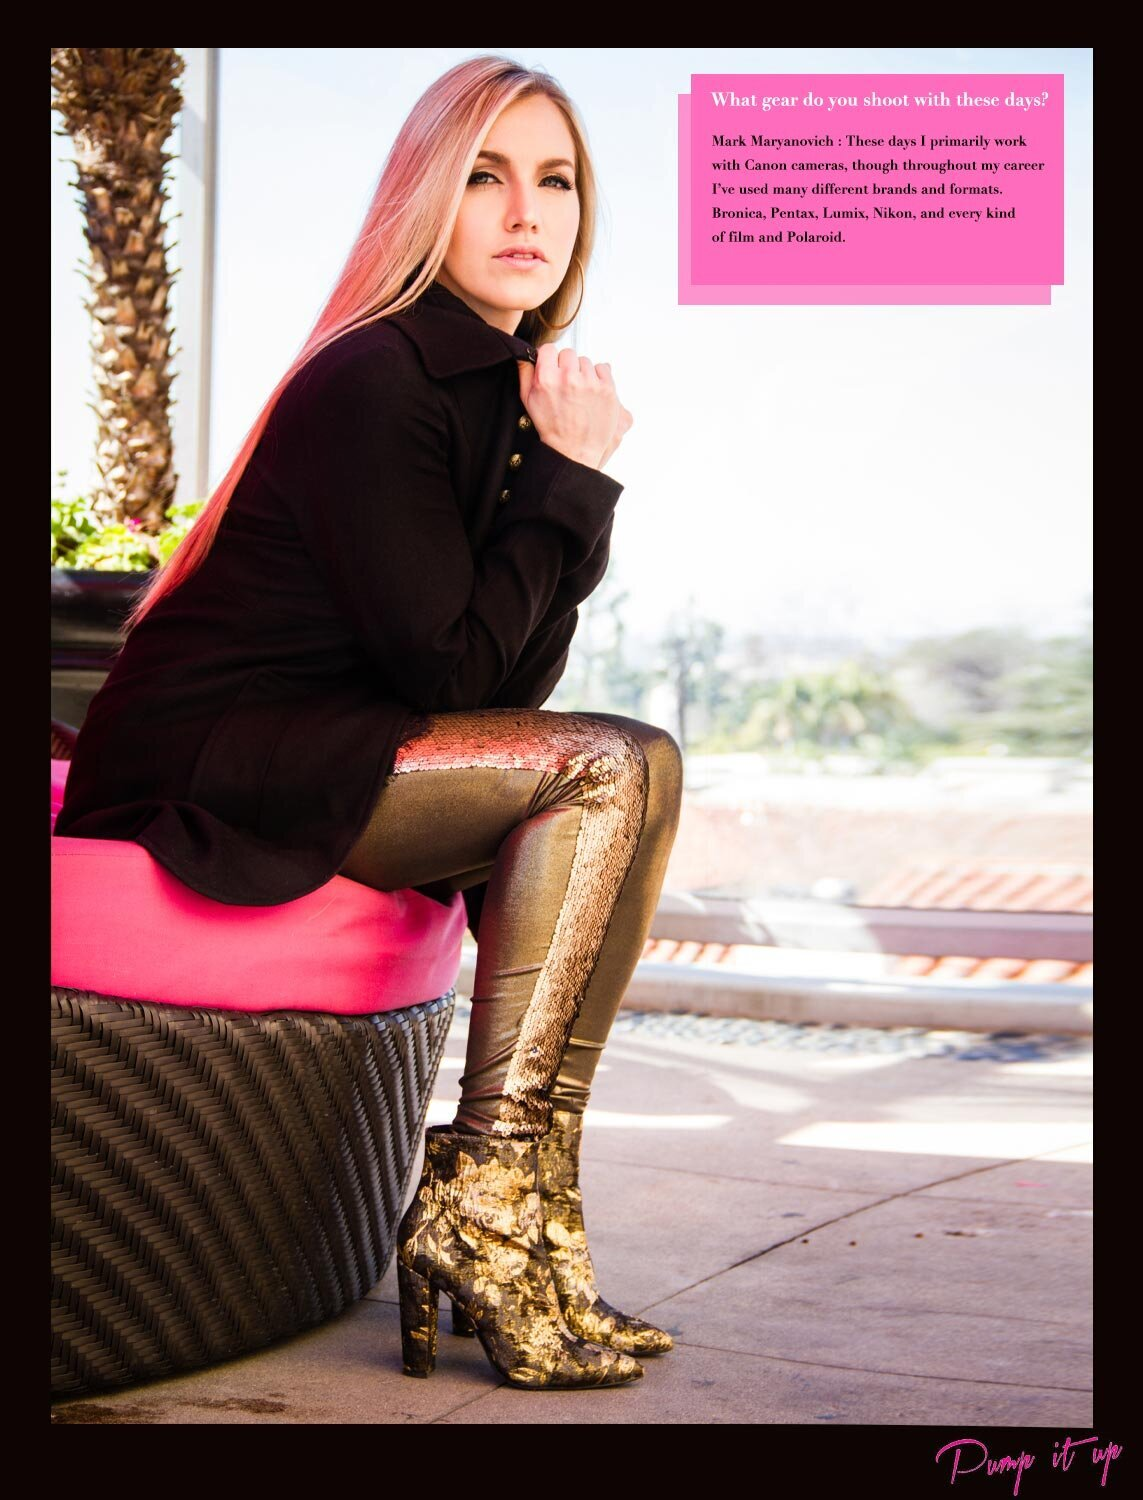 Pump It Up Magazine Interview featuring Mark Maryanovich female musician portrait seated on round chair with pink cushion wearing gold boots and holding lapels of black coat page 6